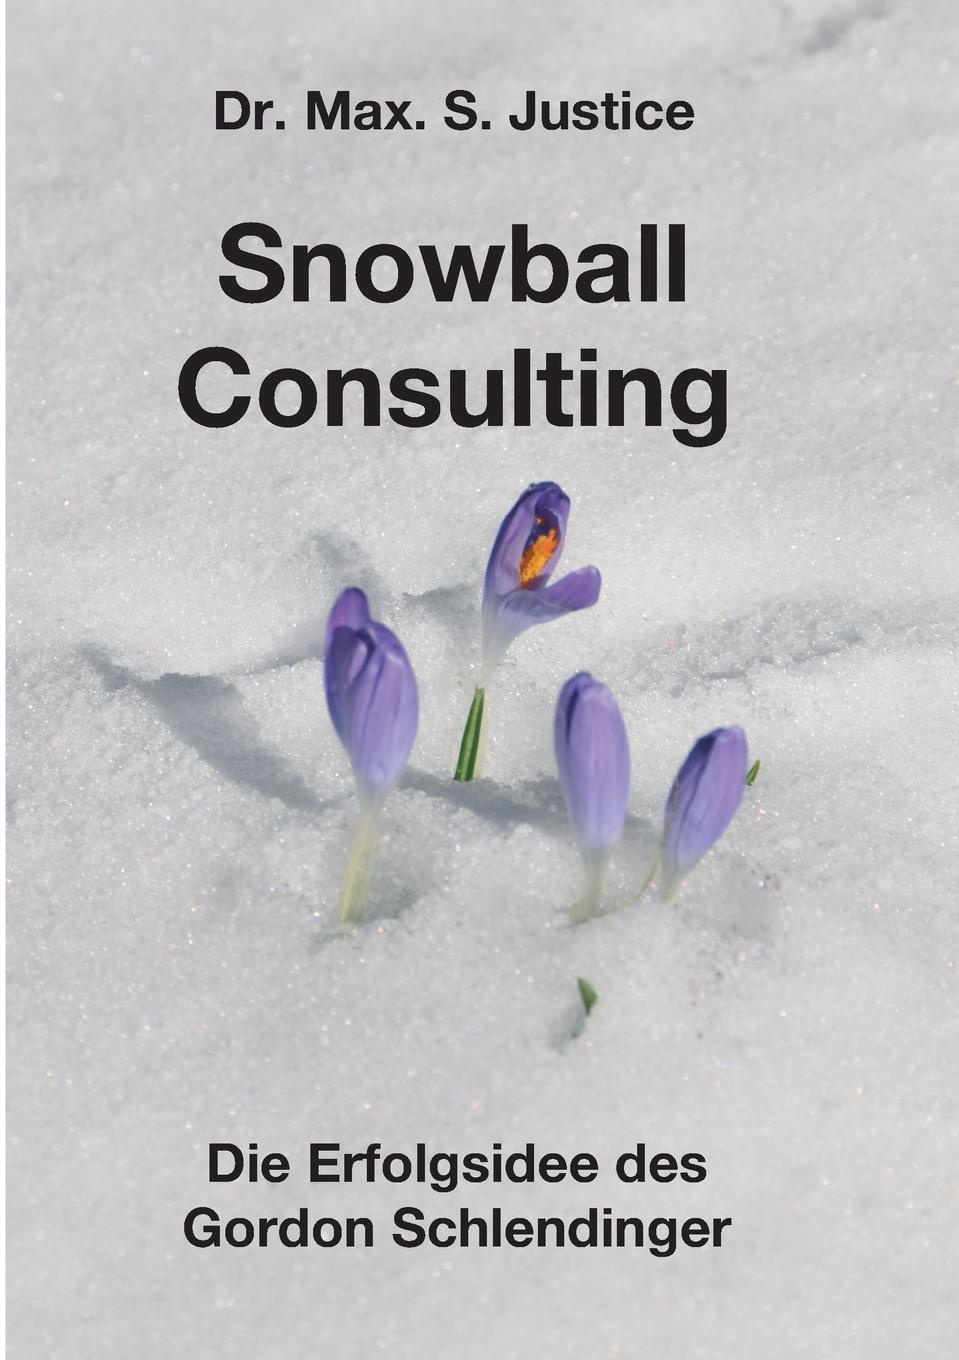 Dr. Max. S. Justice Snowball Consulting